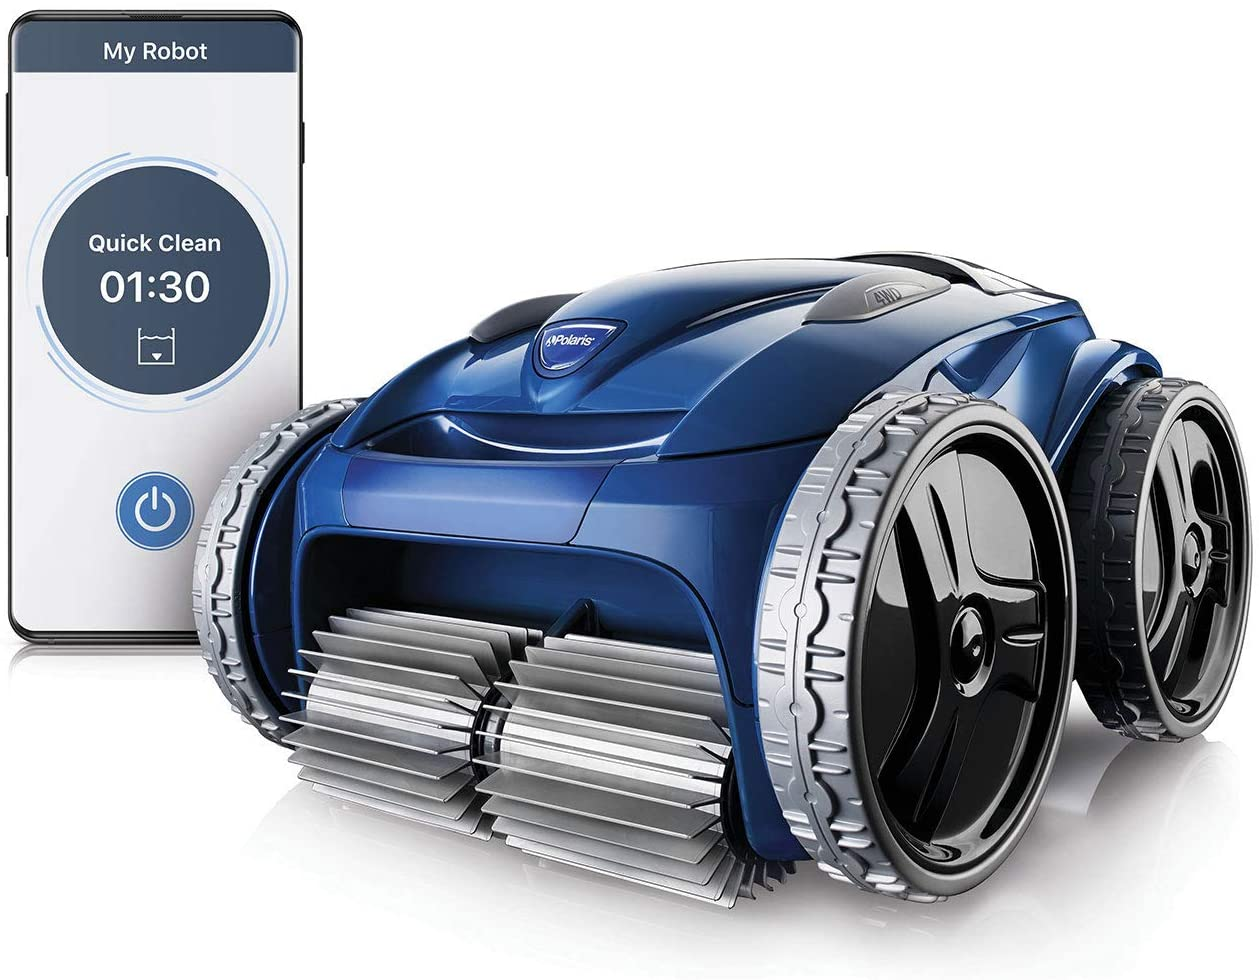 Polaris 9650IQ Sport Robotic Pool Vacuum Cleaner